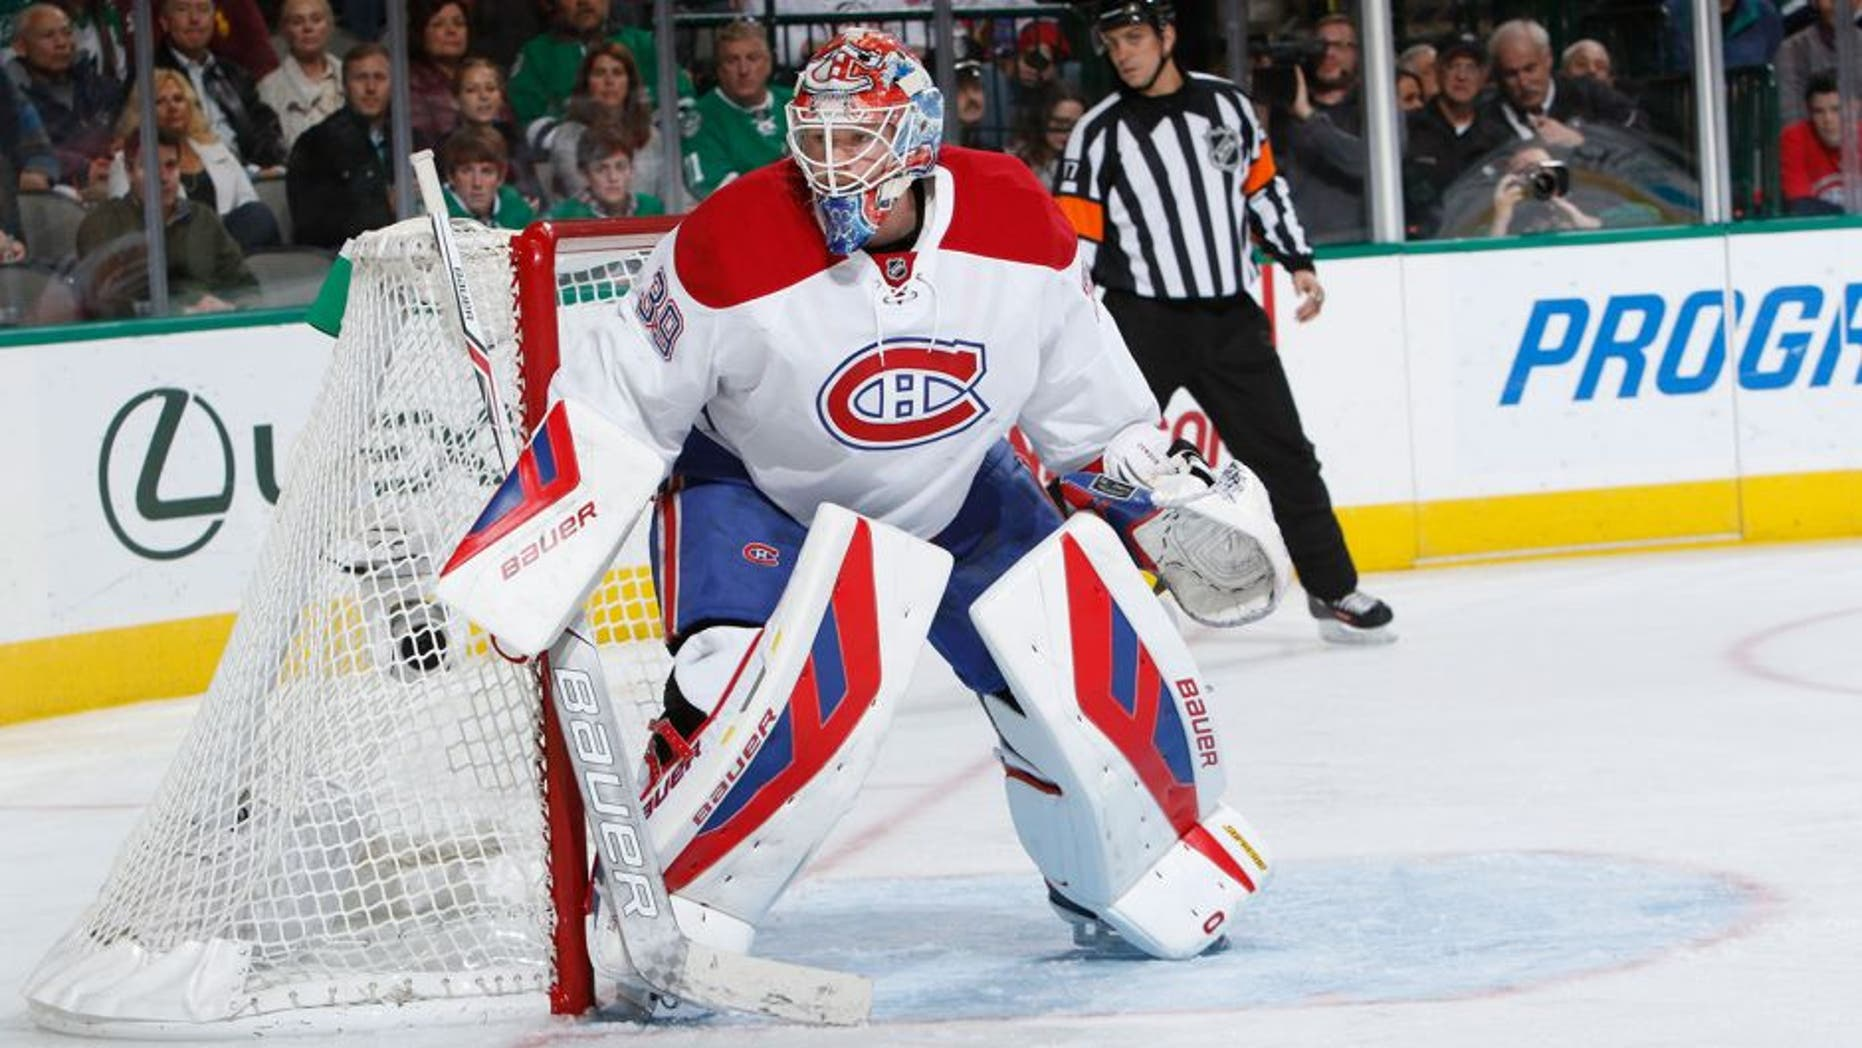 DALLAS, TX - DECEMBER 19: Mike Condon #39 of the Montreal Canadiens waits for the puck against the Dallas Stars at the American Airlines Center on December 19, 2015 in Dallas, Texas. (Photo by Glenn James/NHLI via Getty Images)